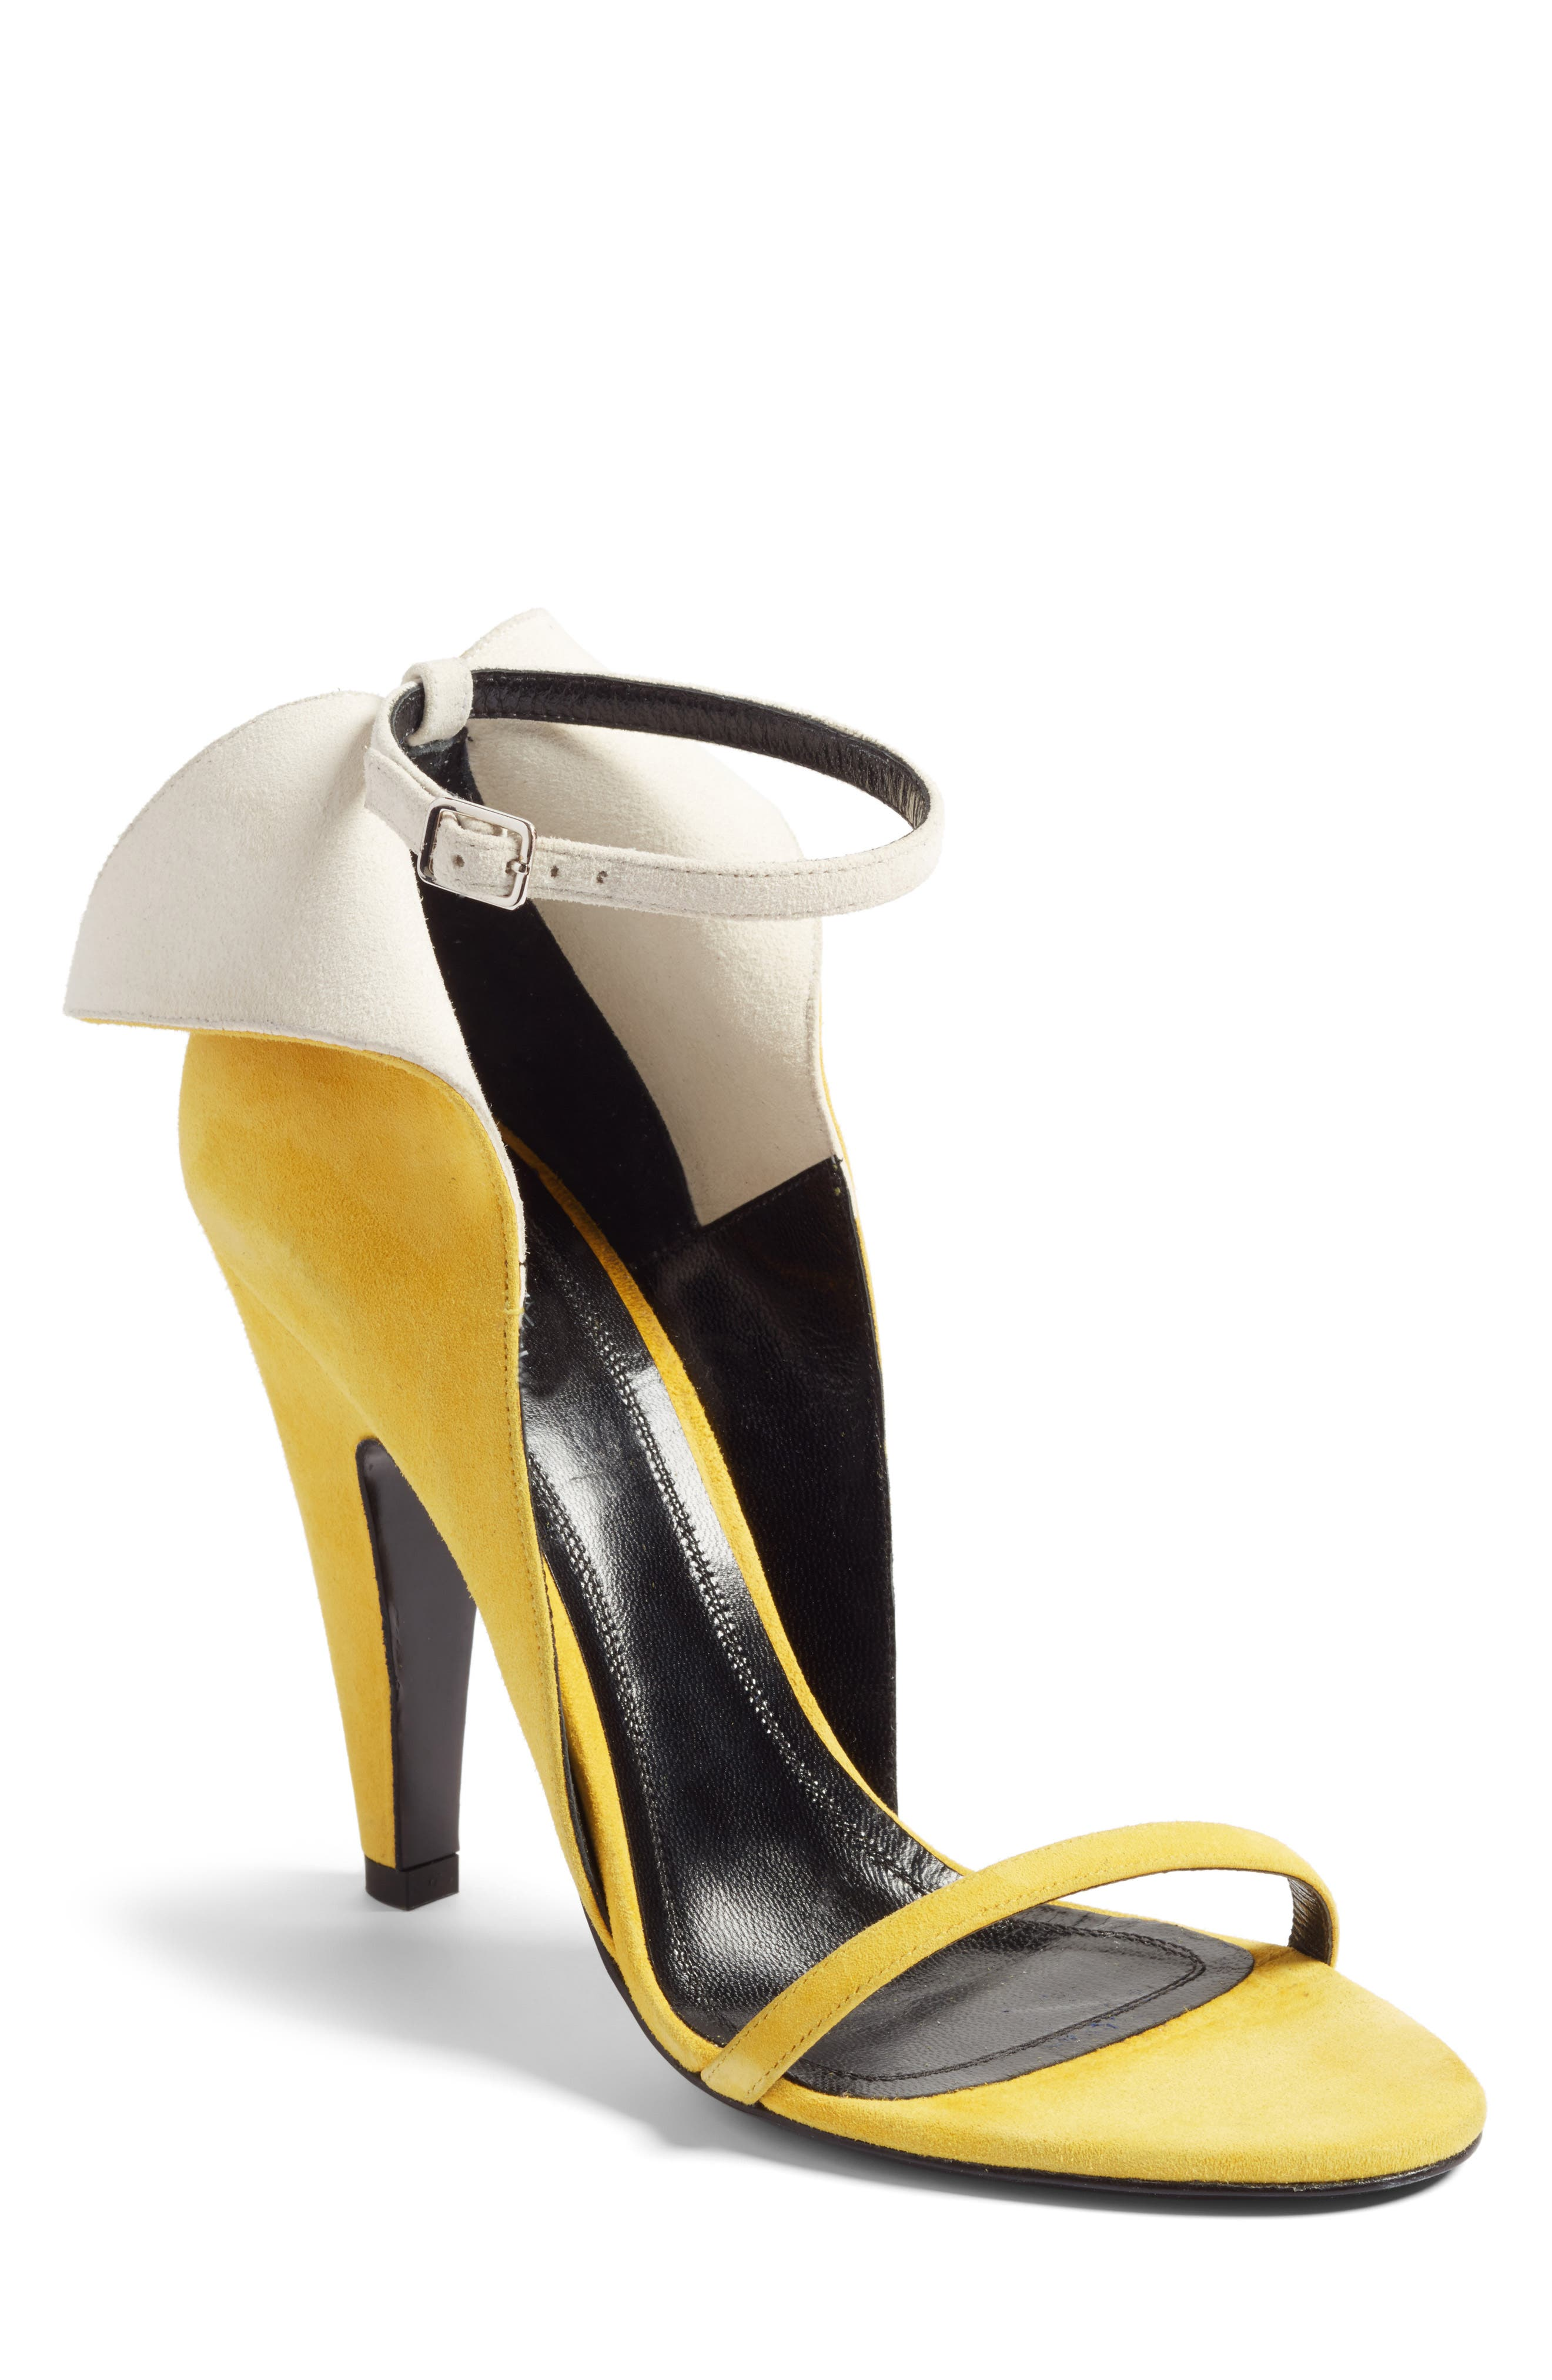 Alternate Image 1 Selected - CALVIN KLEIN 205W39NYC Cammy Sandal (Women)